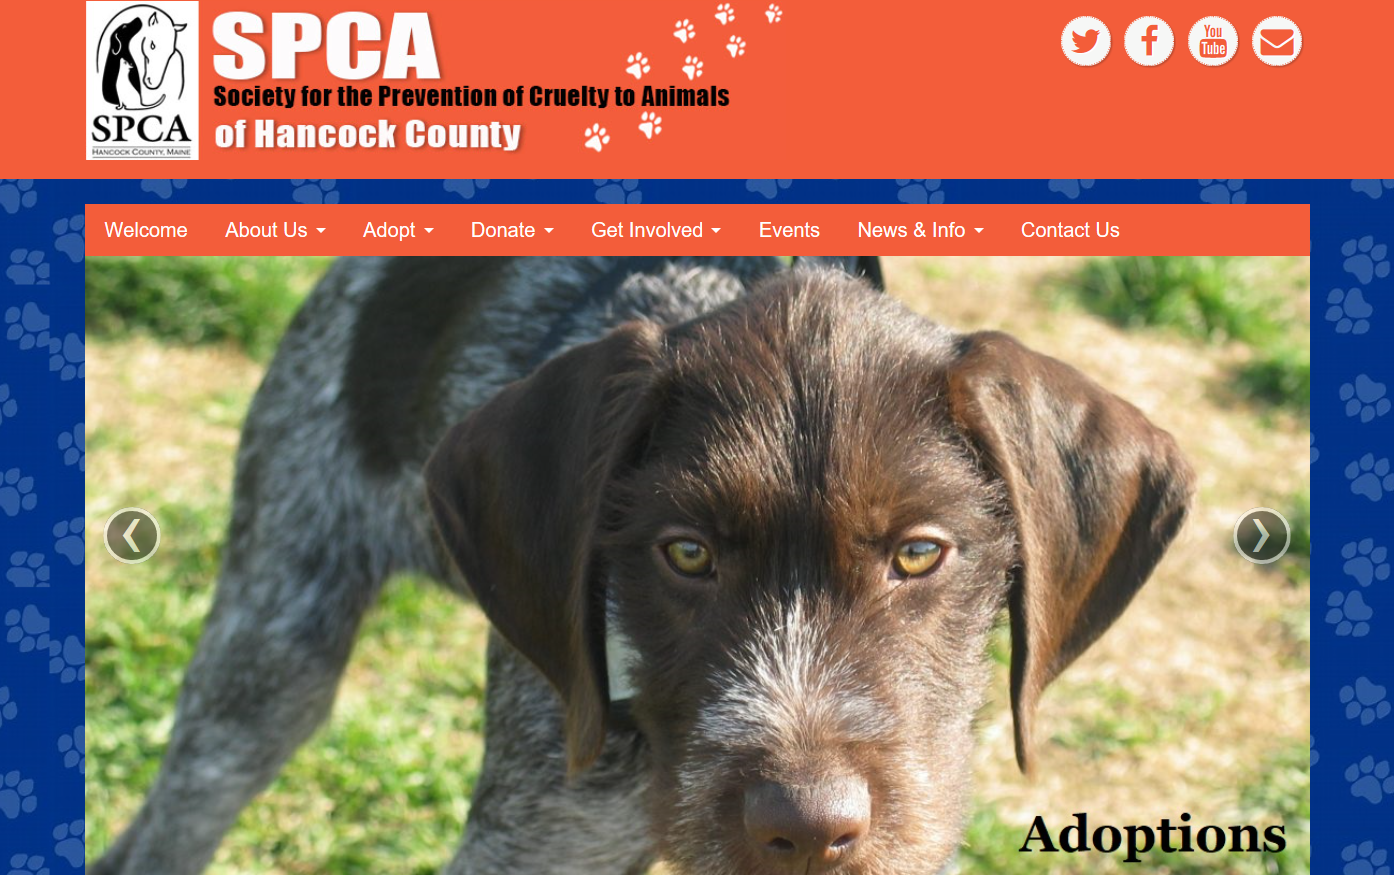 SPCA of Hancock County